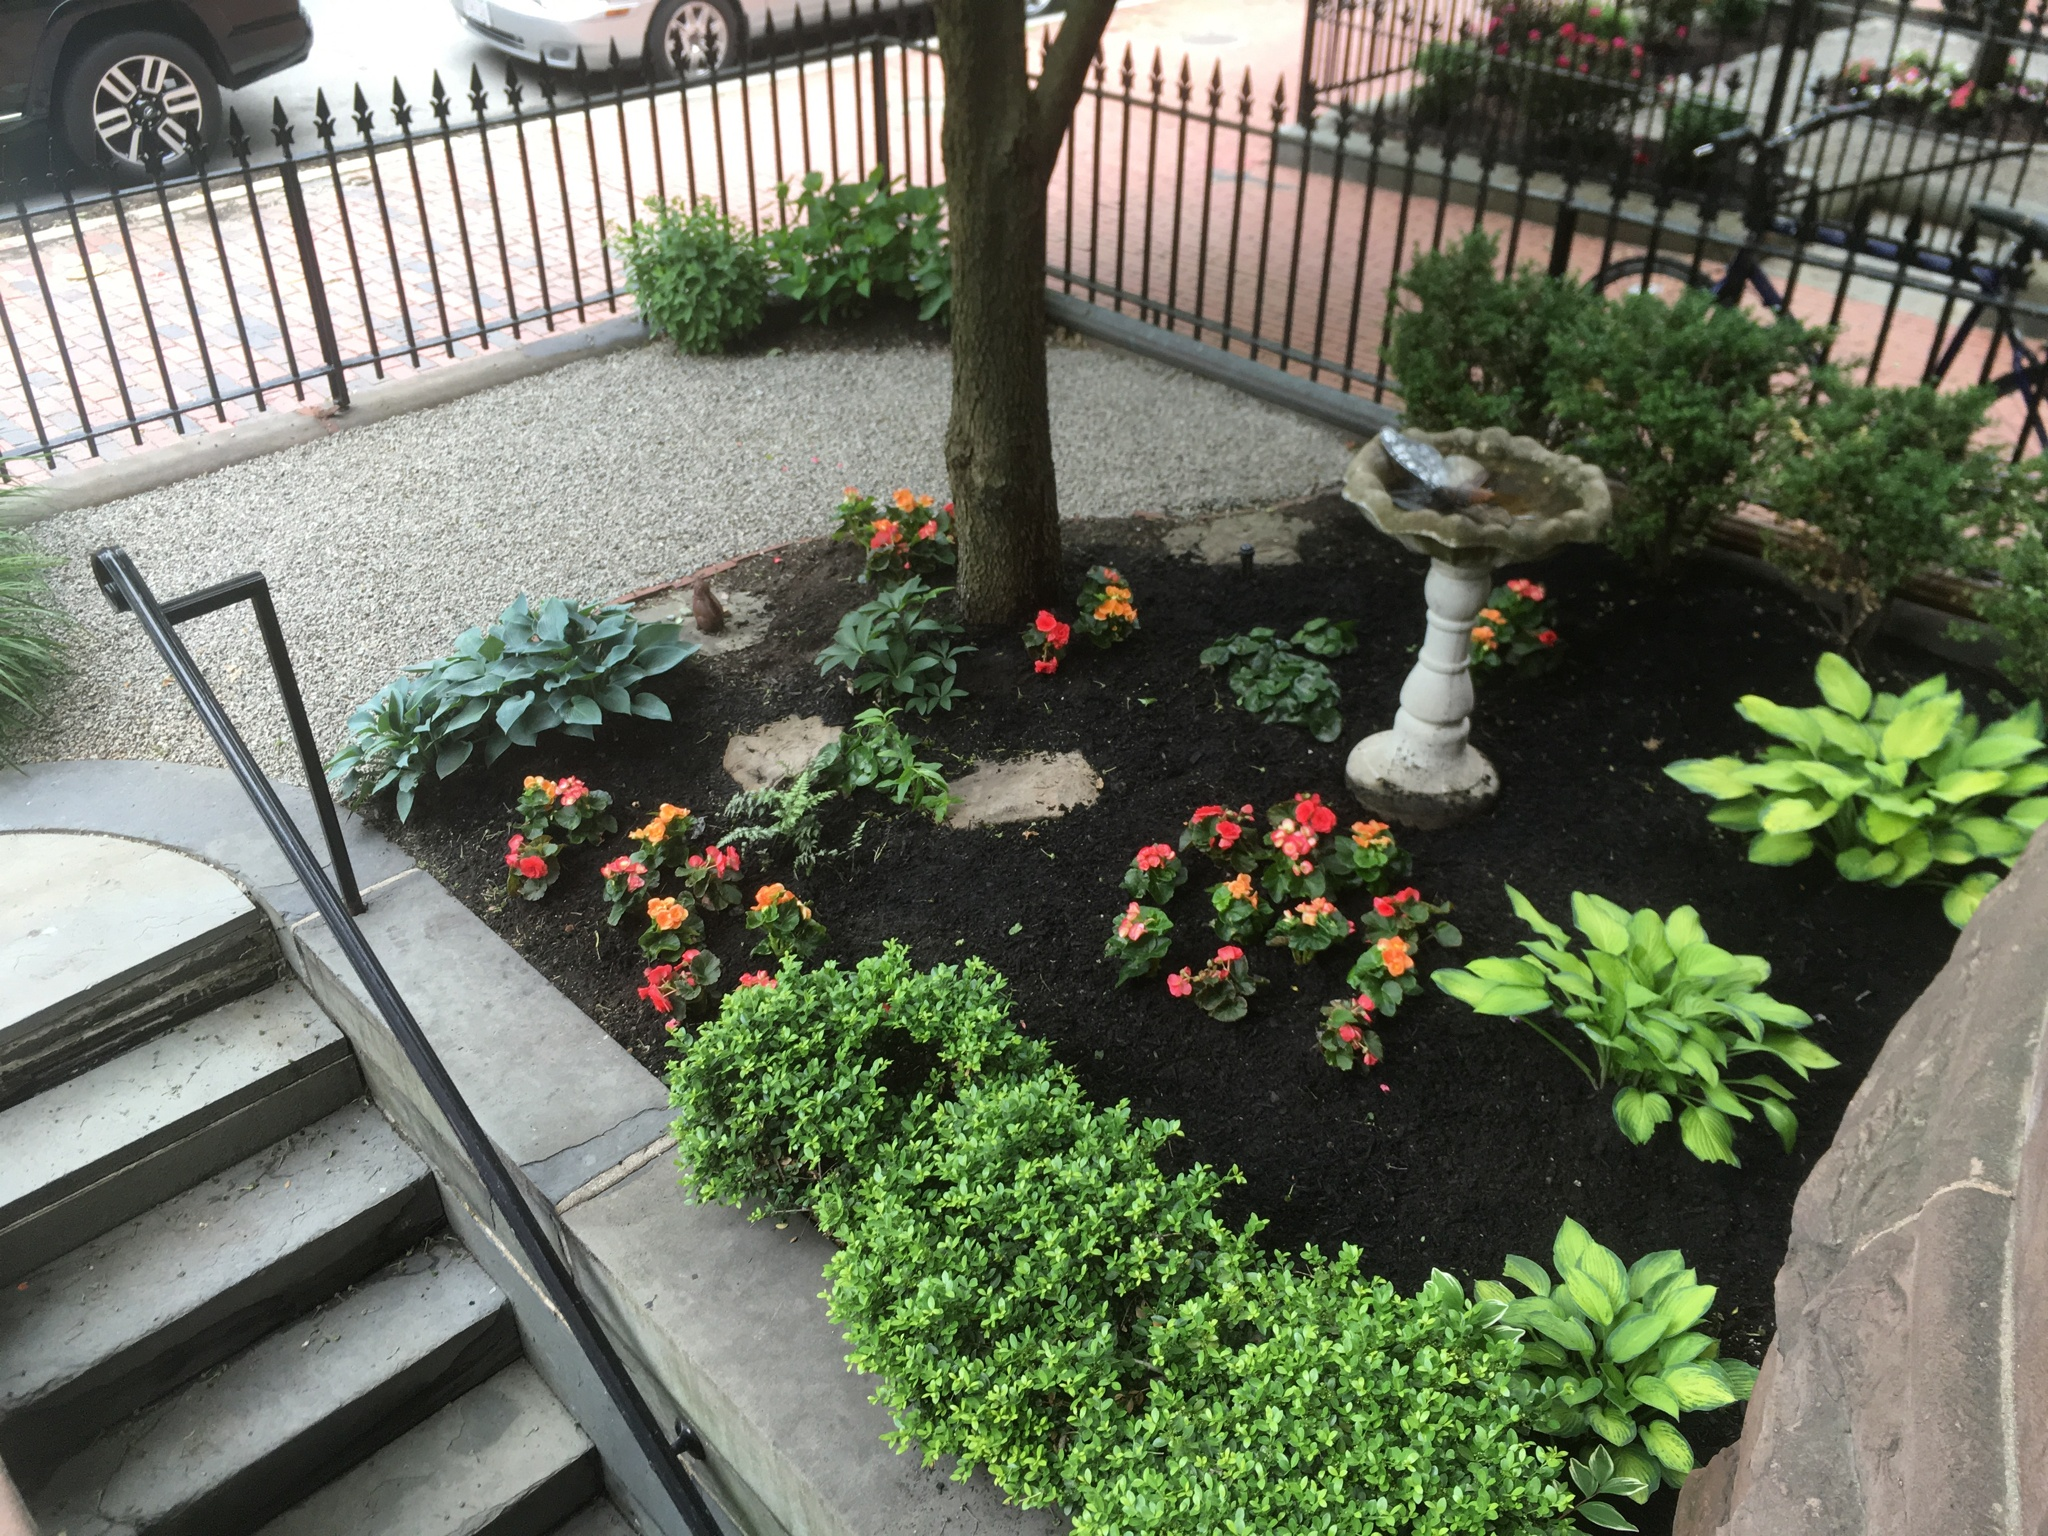 . The Benefits of A Rooftop Garden Drip Irrigation System Installation